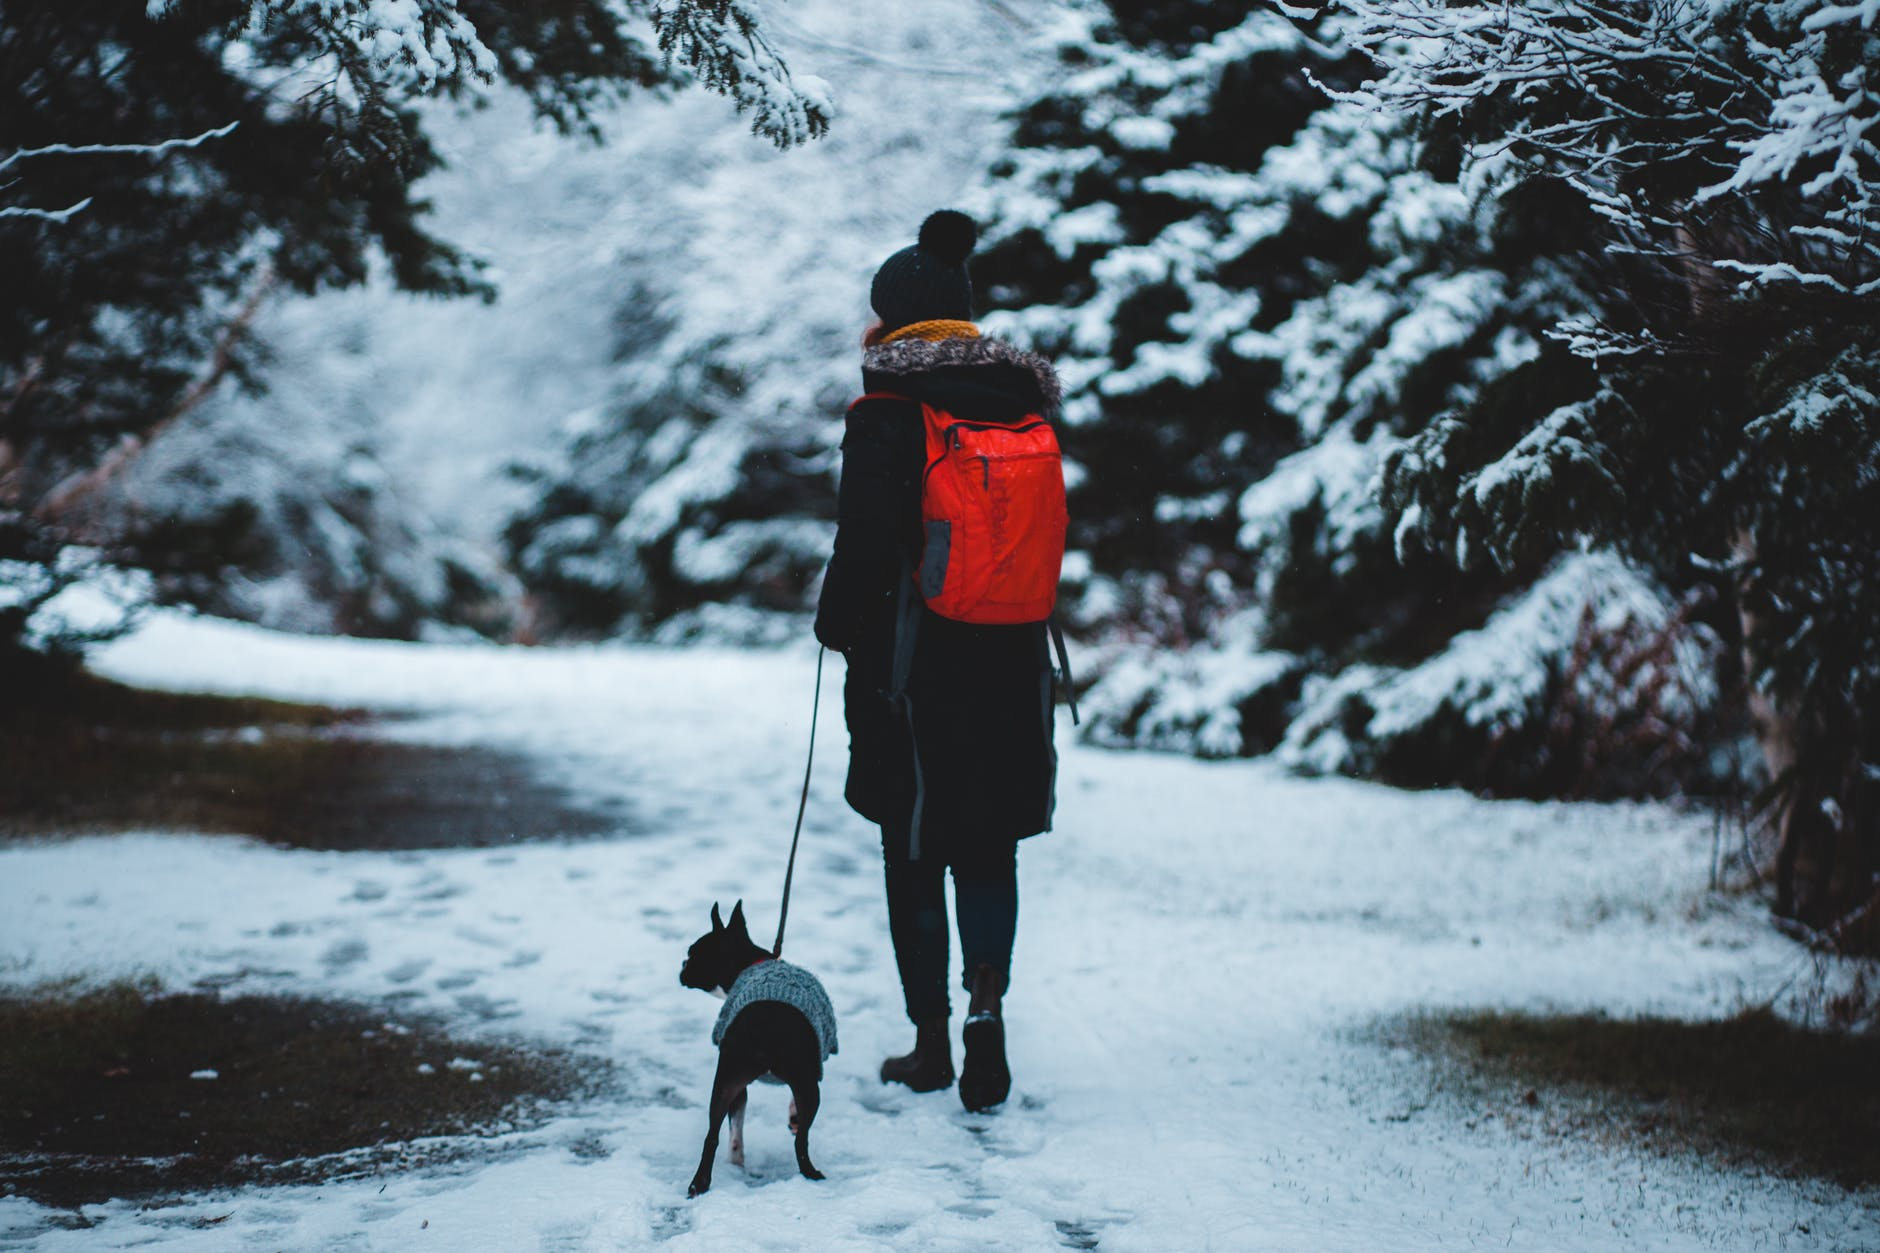 man in black jacket and black pants standing on snow covered ground with black and white dog